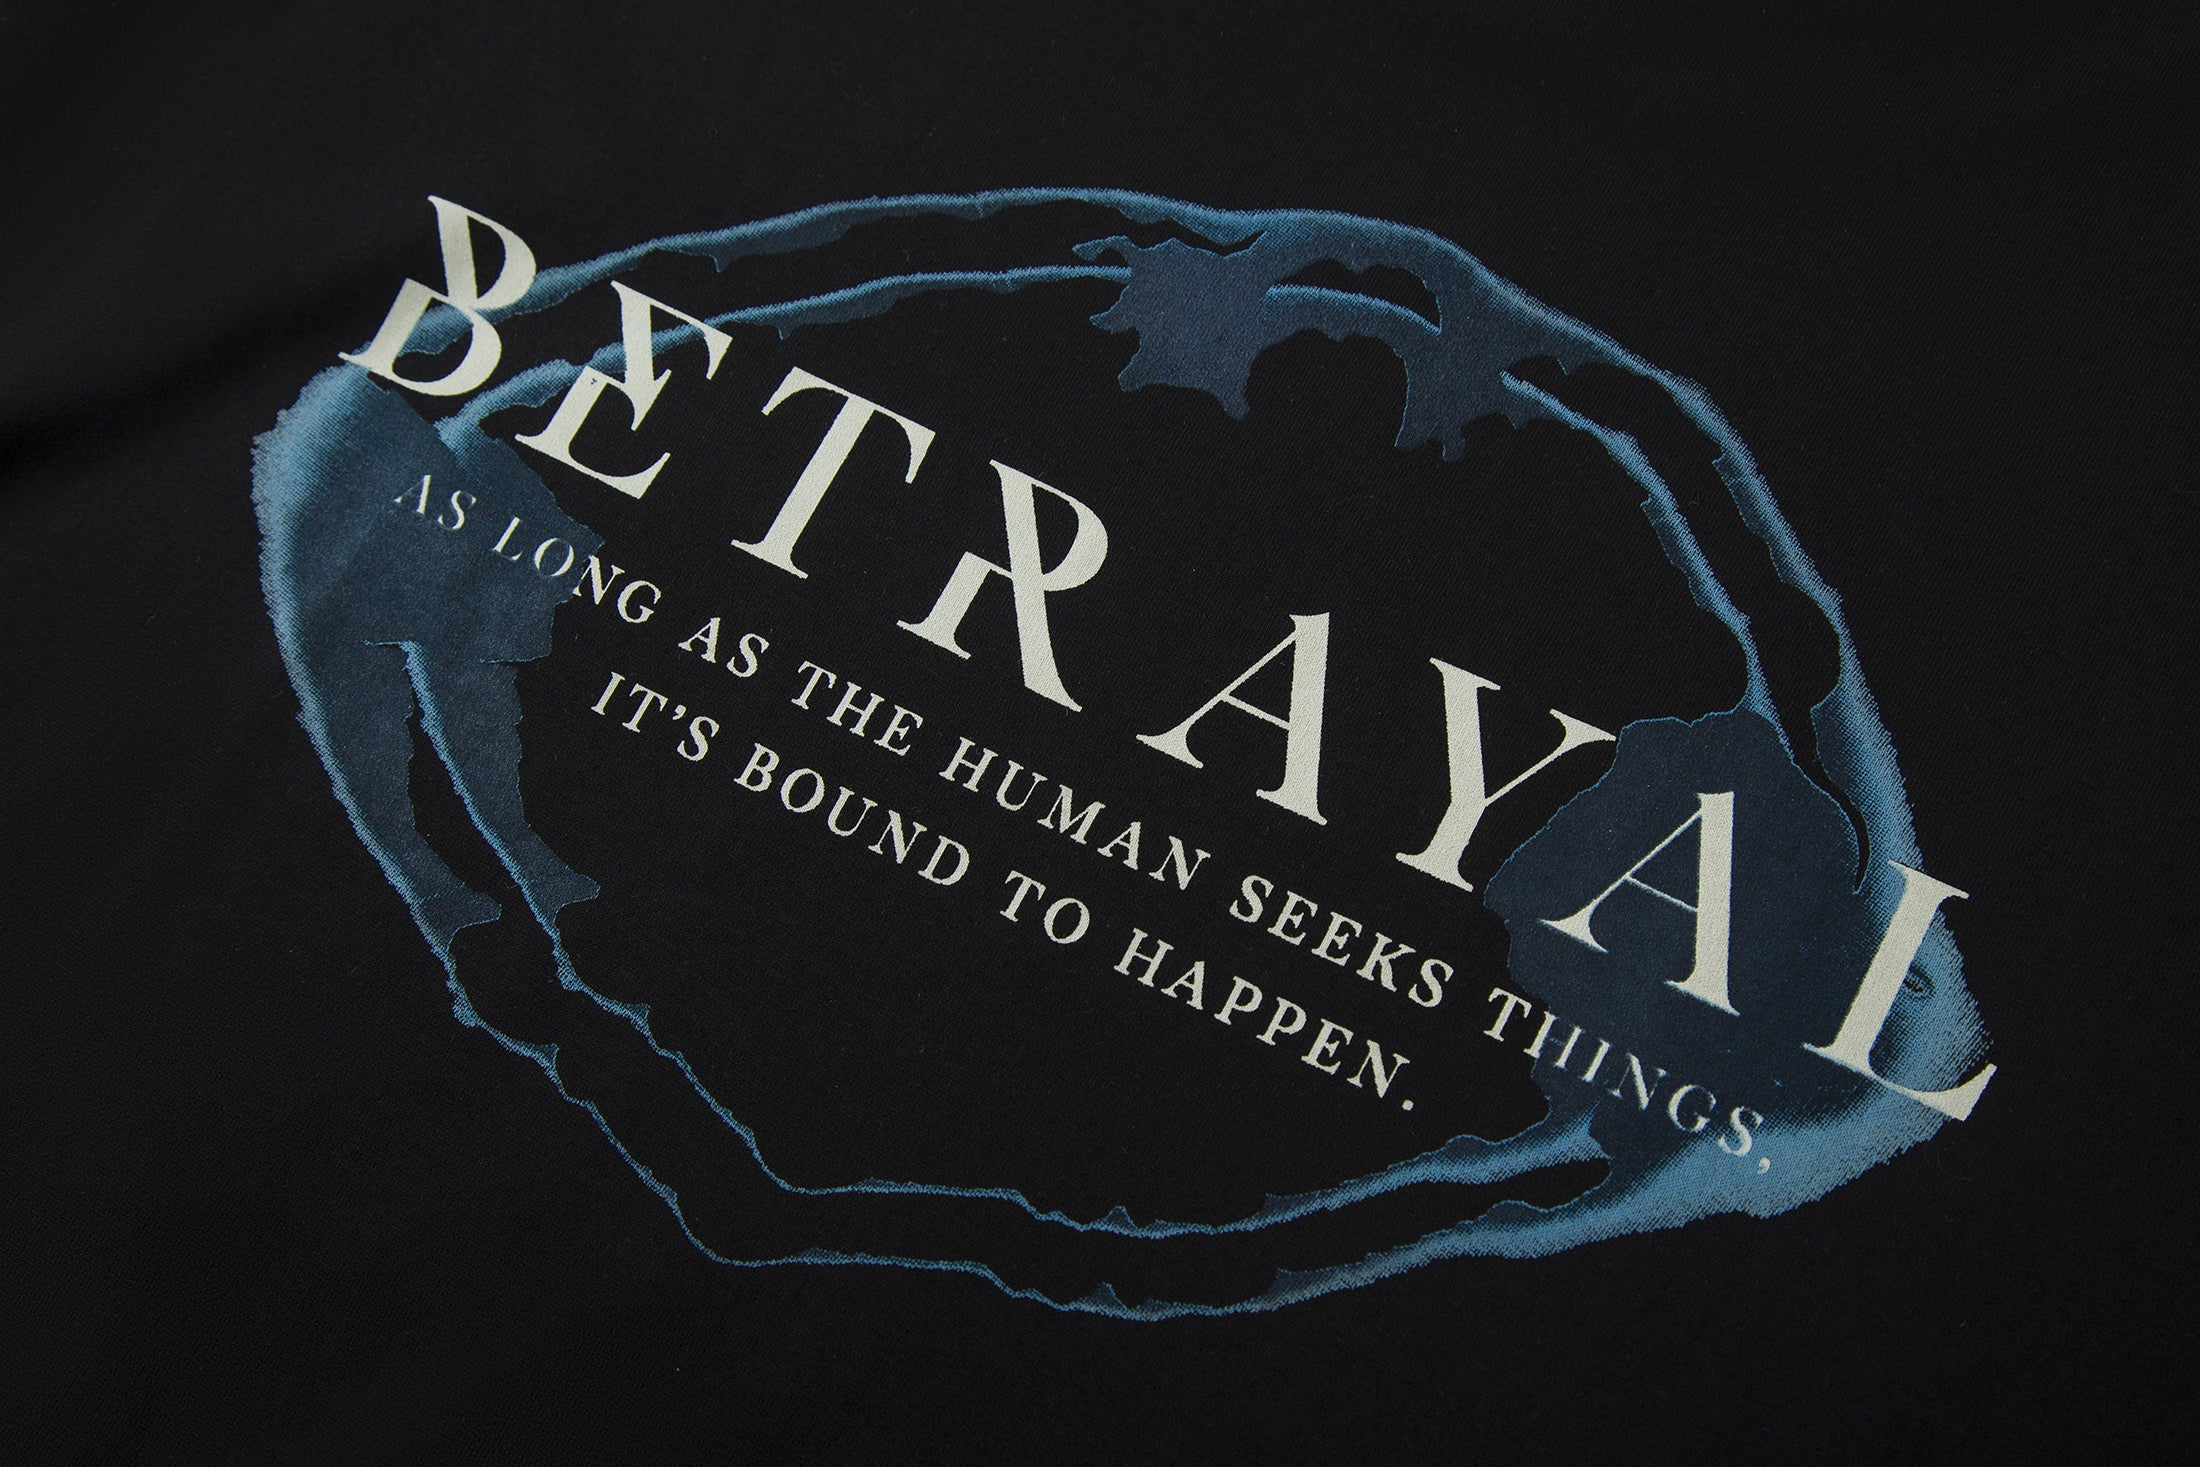 Load image into Gallery viewer, Le Fruit Defendu Betrayal T-shirt